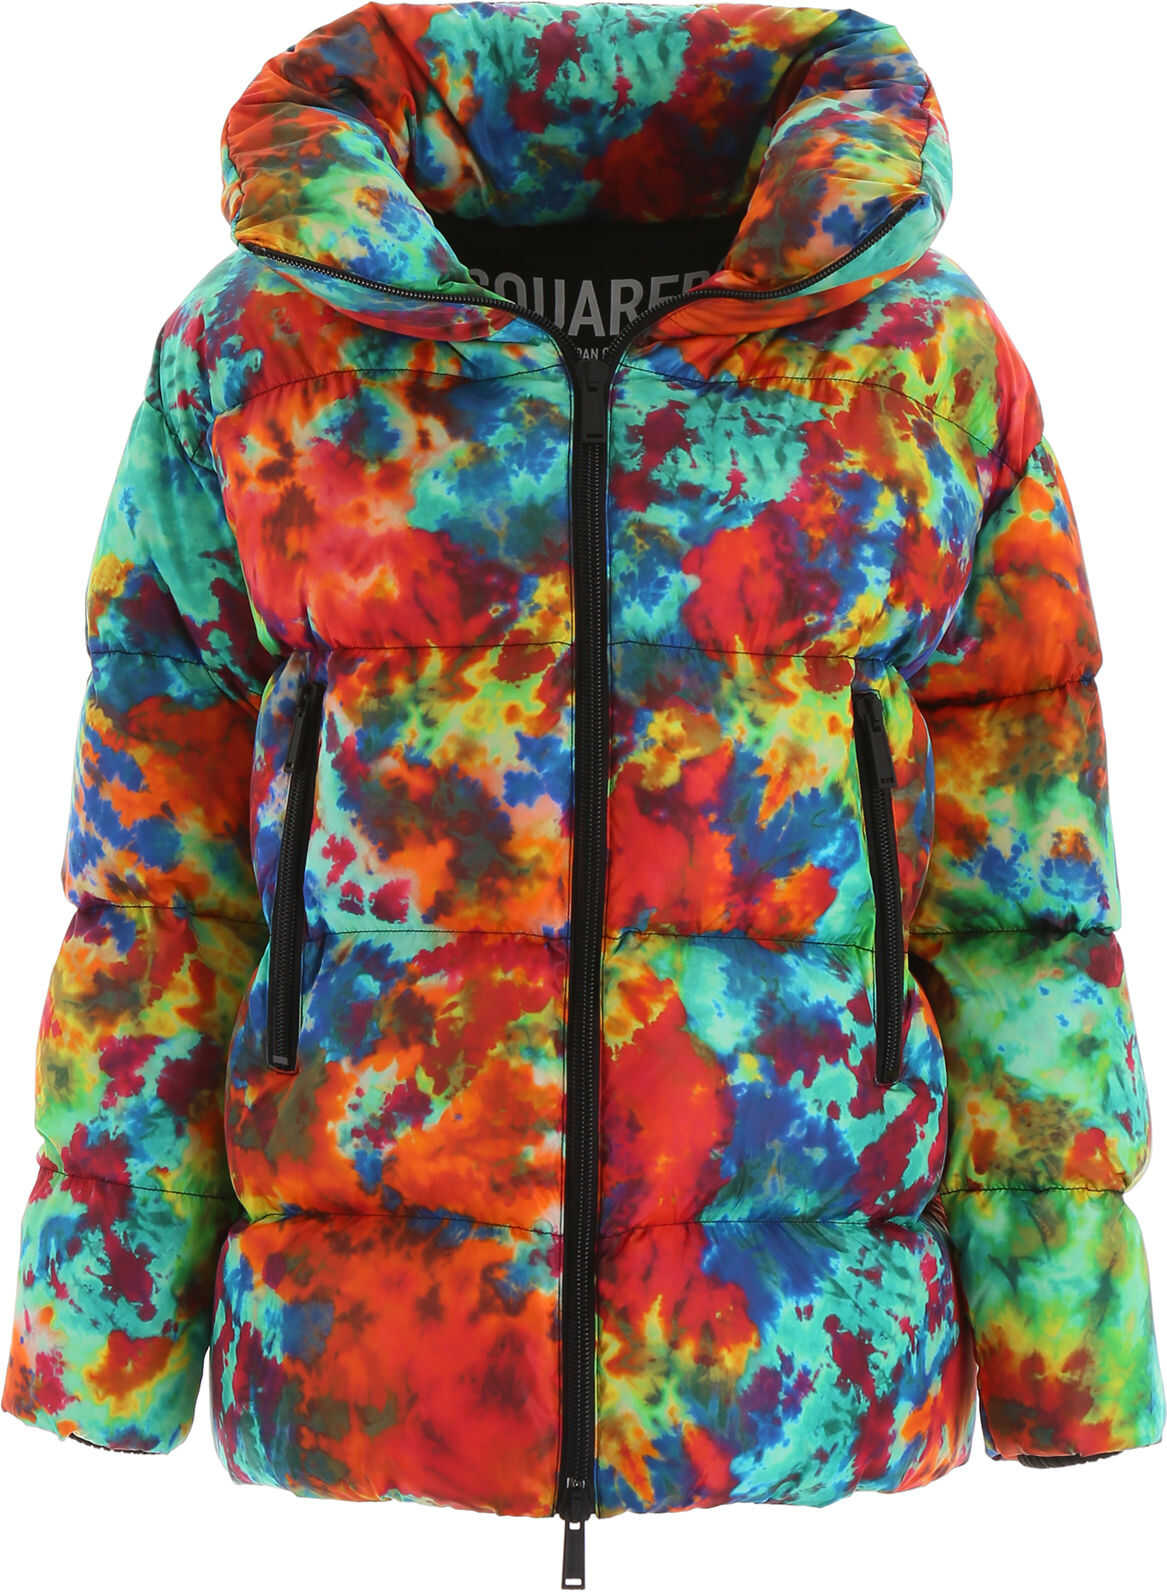 DSQUARED2 Tie Dye Puffer Jacket MULTICOLOUR